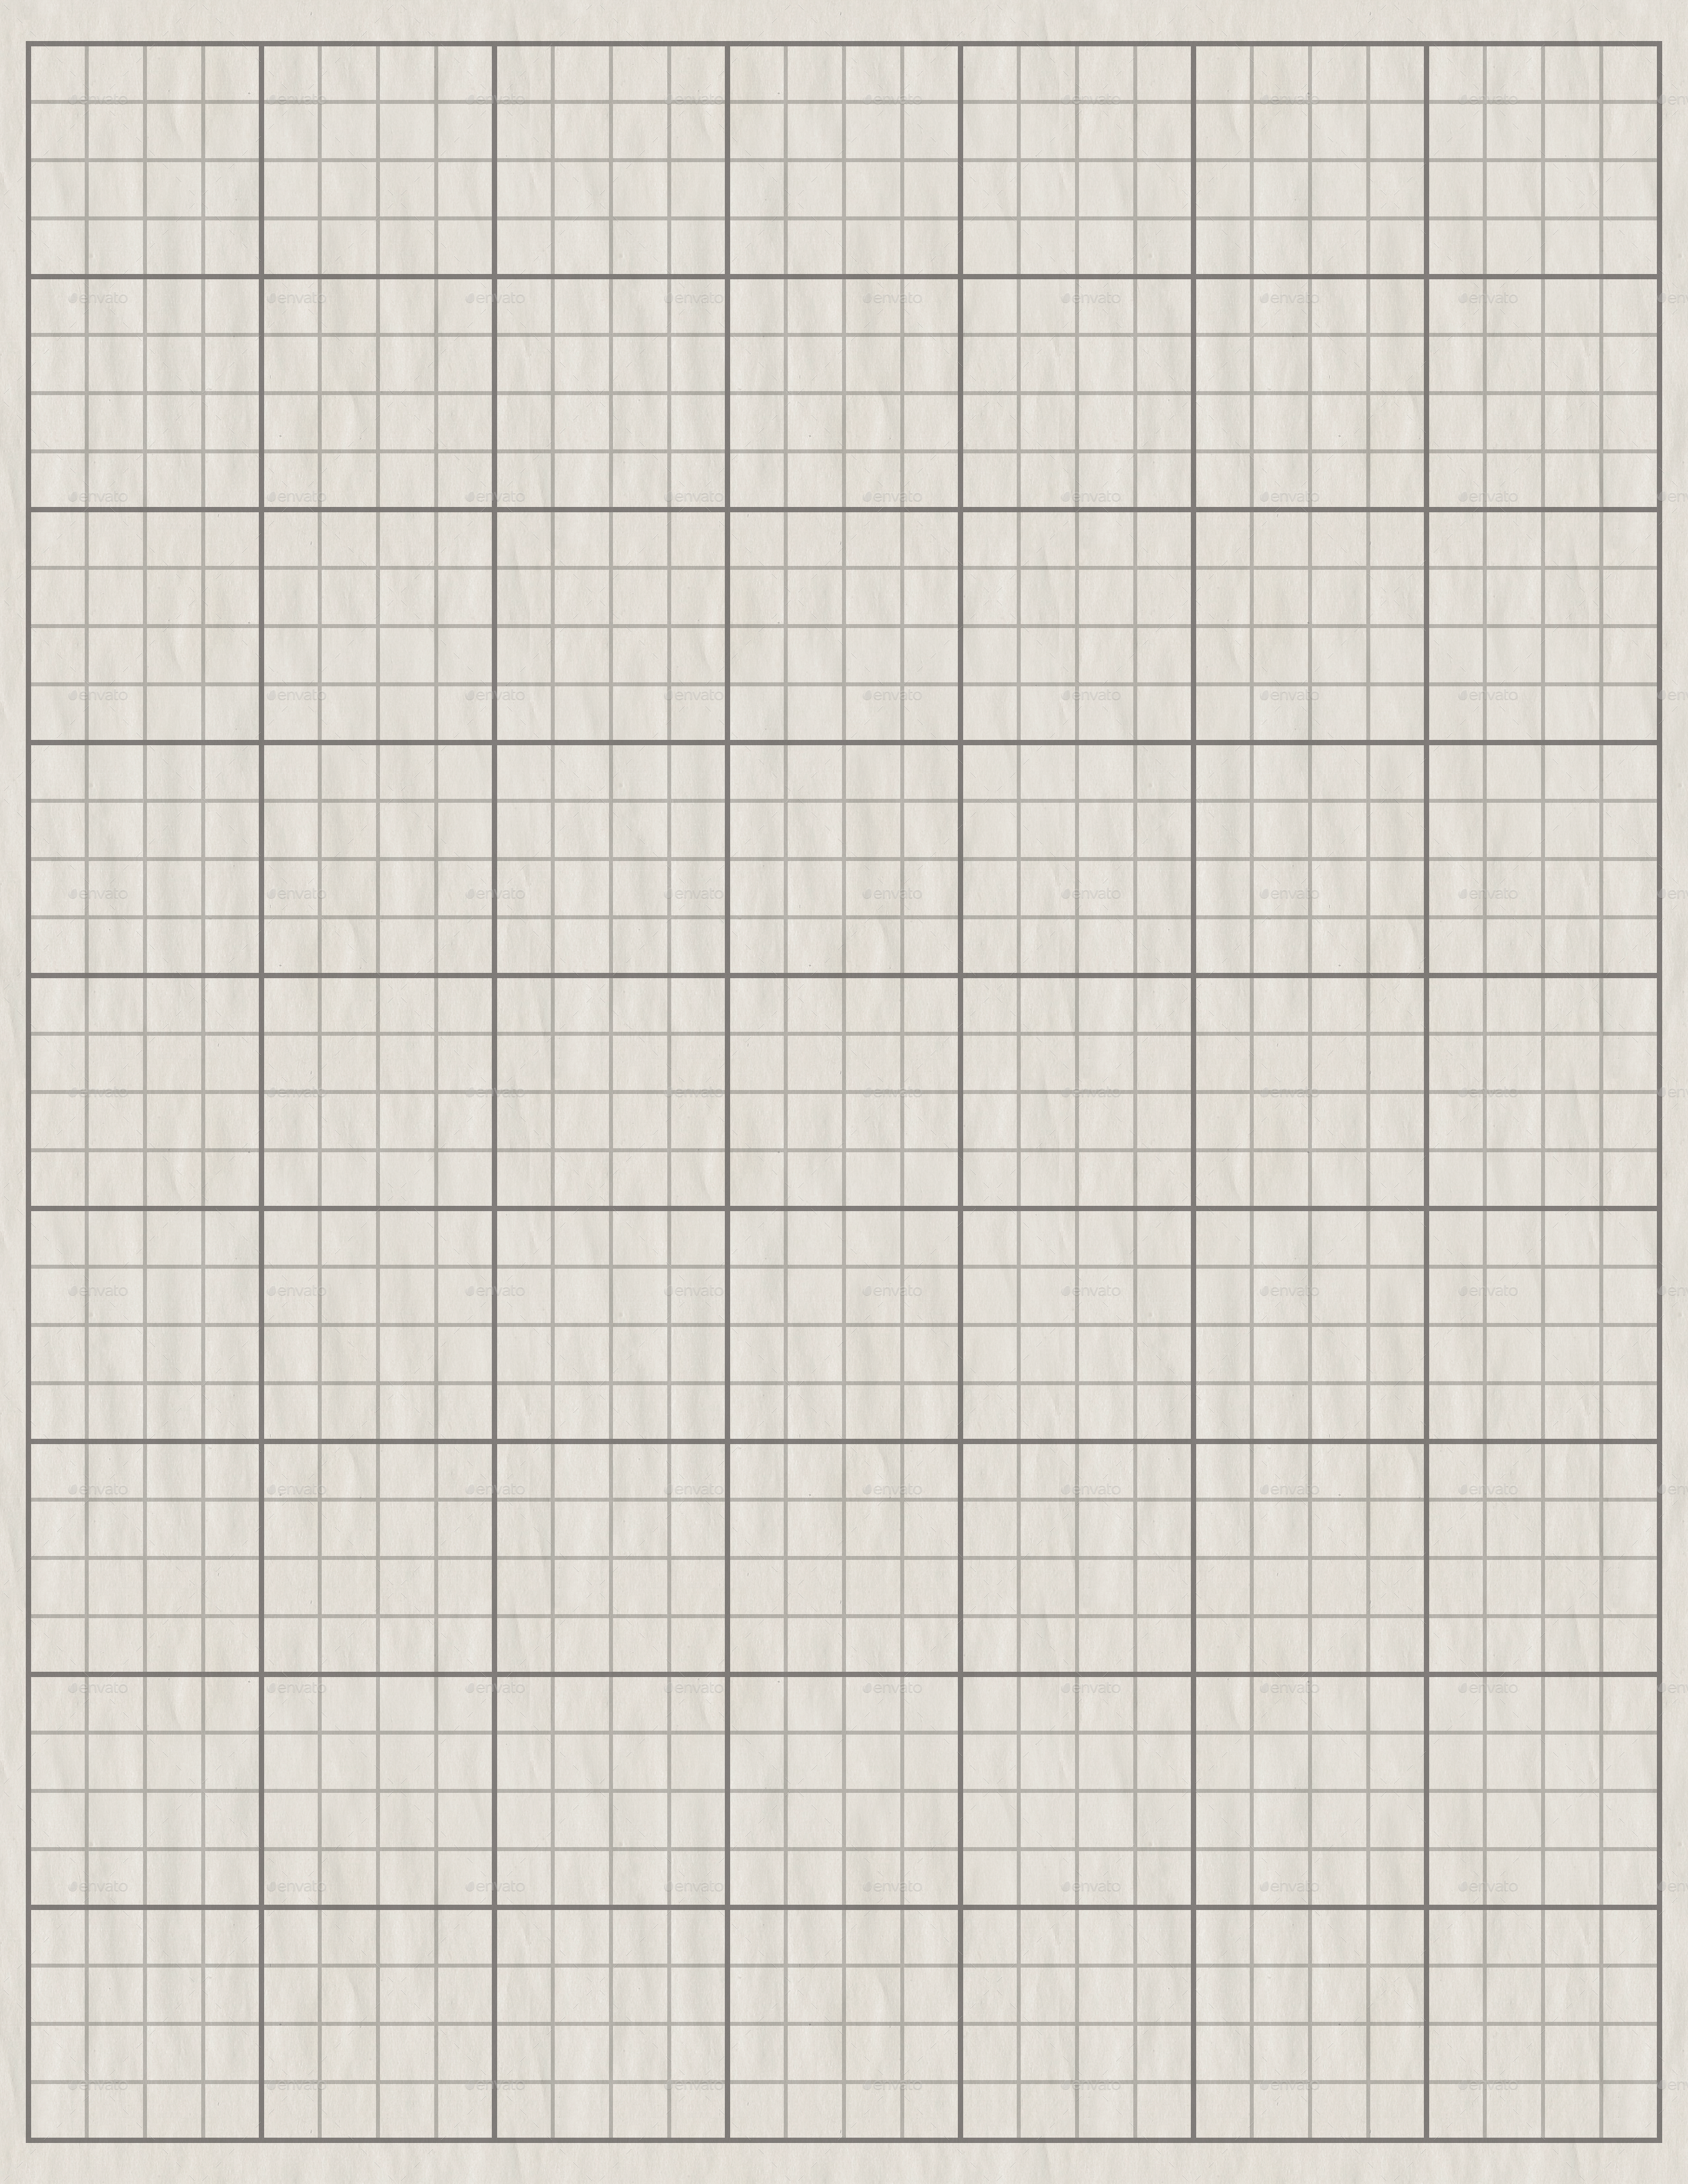 Wrinkled Lined Paper By Hassified